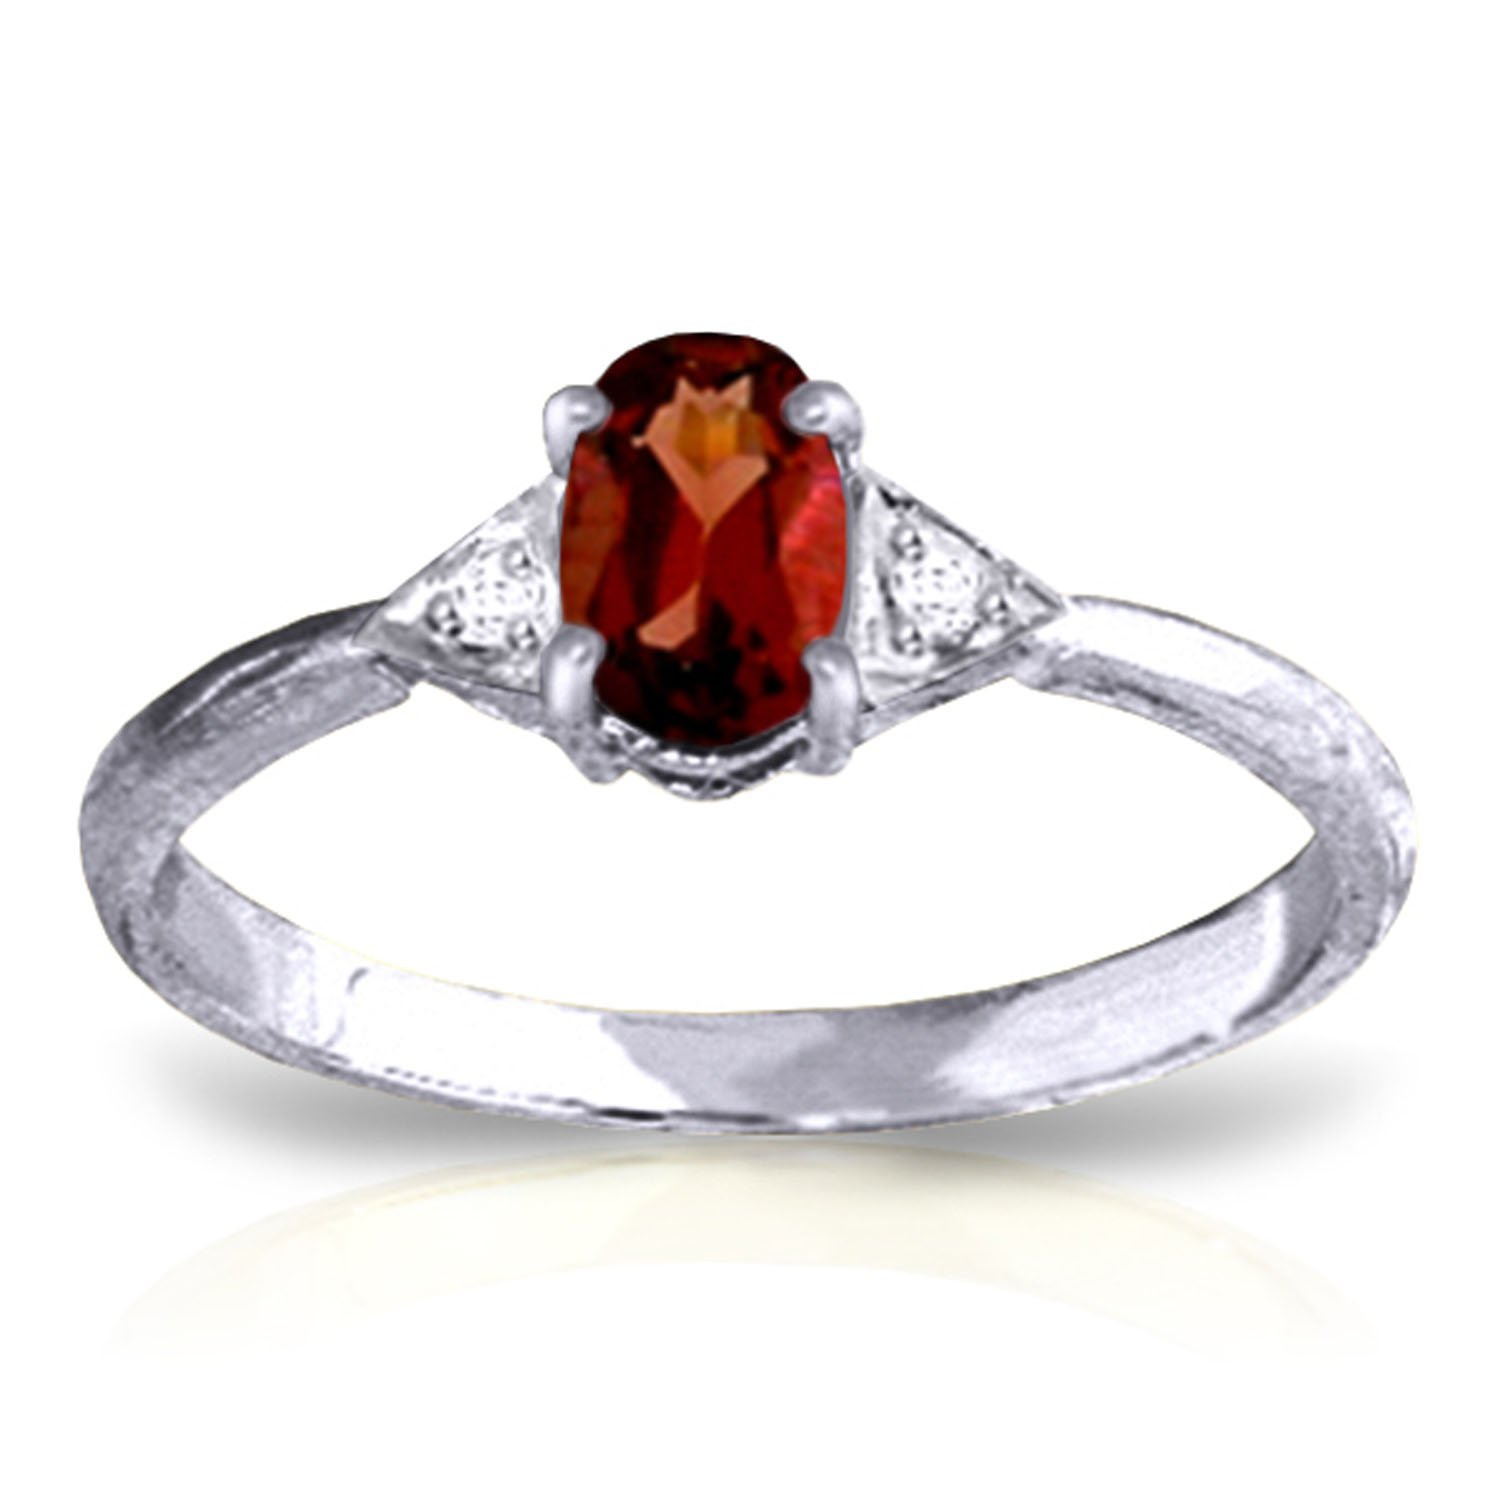 0.46 Carat 14k Solid White Gold Ring with Genuine Diamonds and Natural Oval-shaped Garnet - Size 11